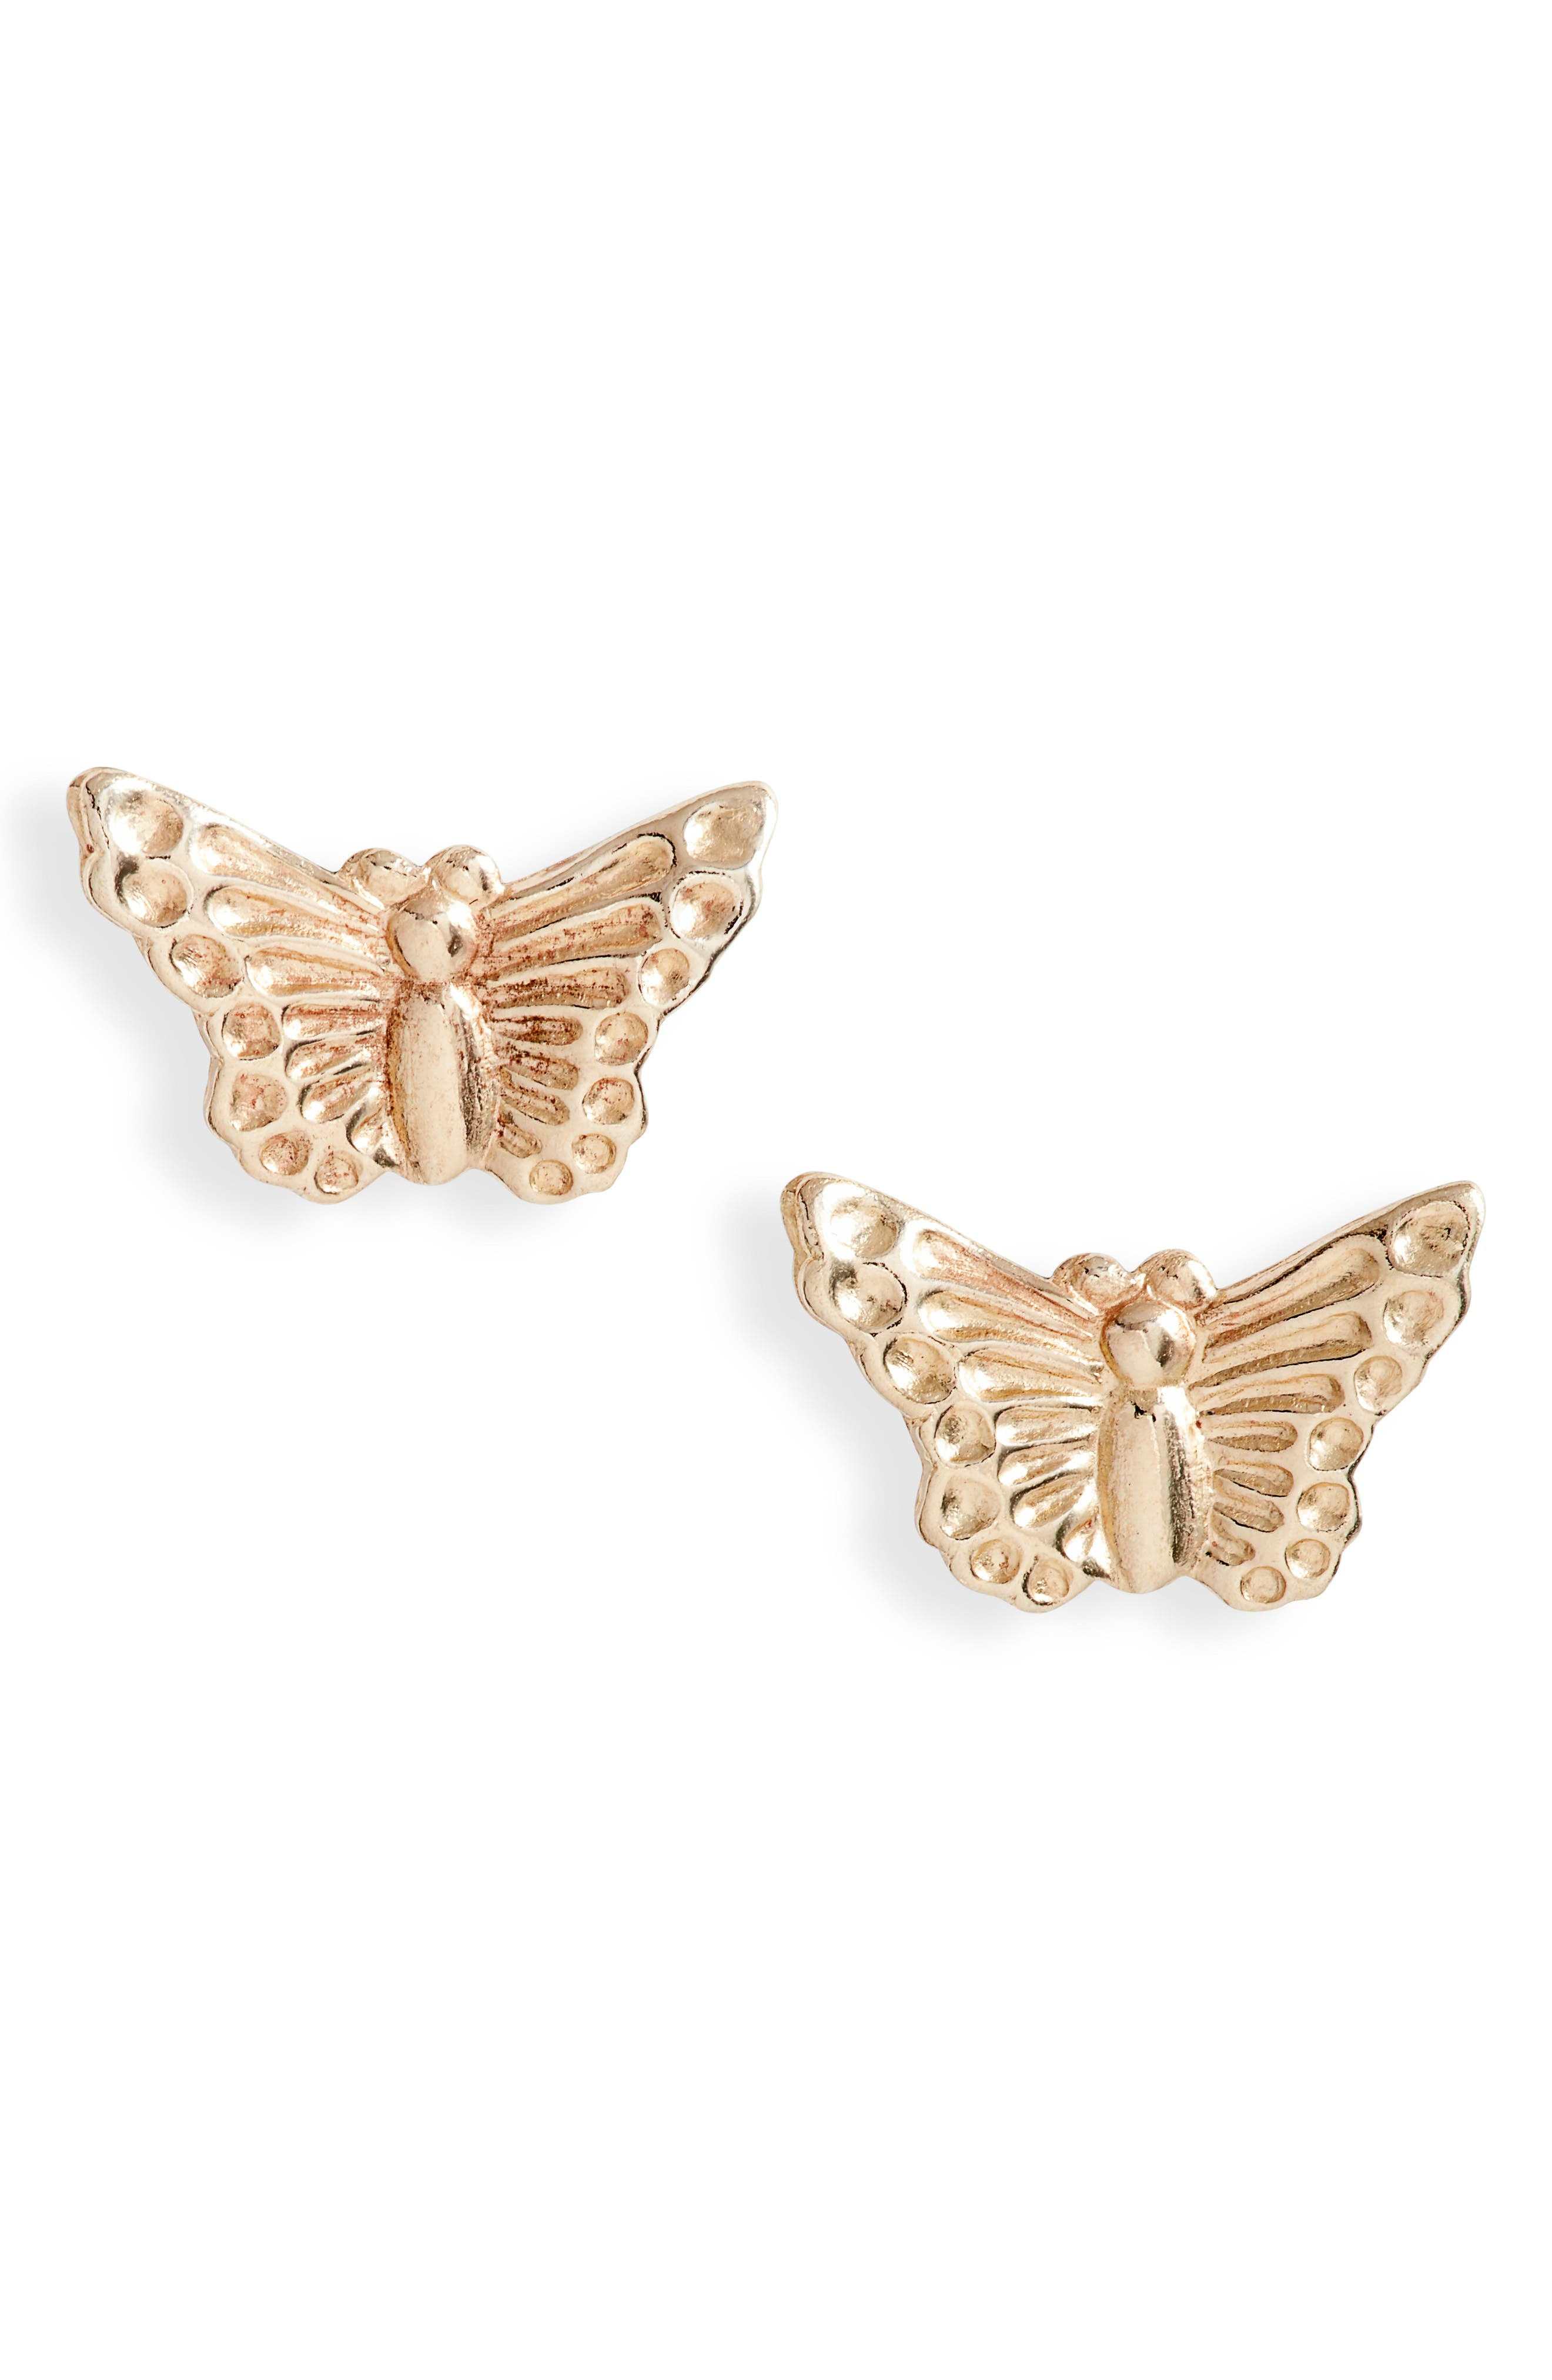 Beautiful butterflies flit on the ears in these whimsical studs that are made in the USA. Style Name: Set & Stones Madi Butterfly Stud Earrings. Style Number: 6093927. Available in stores.